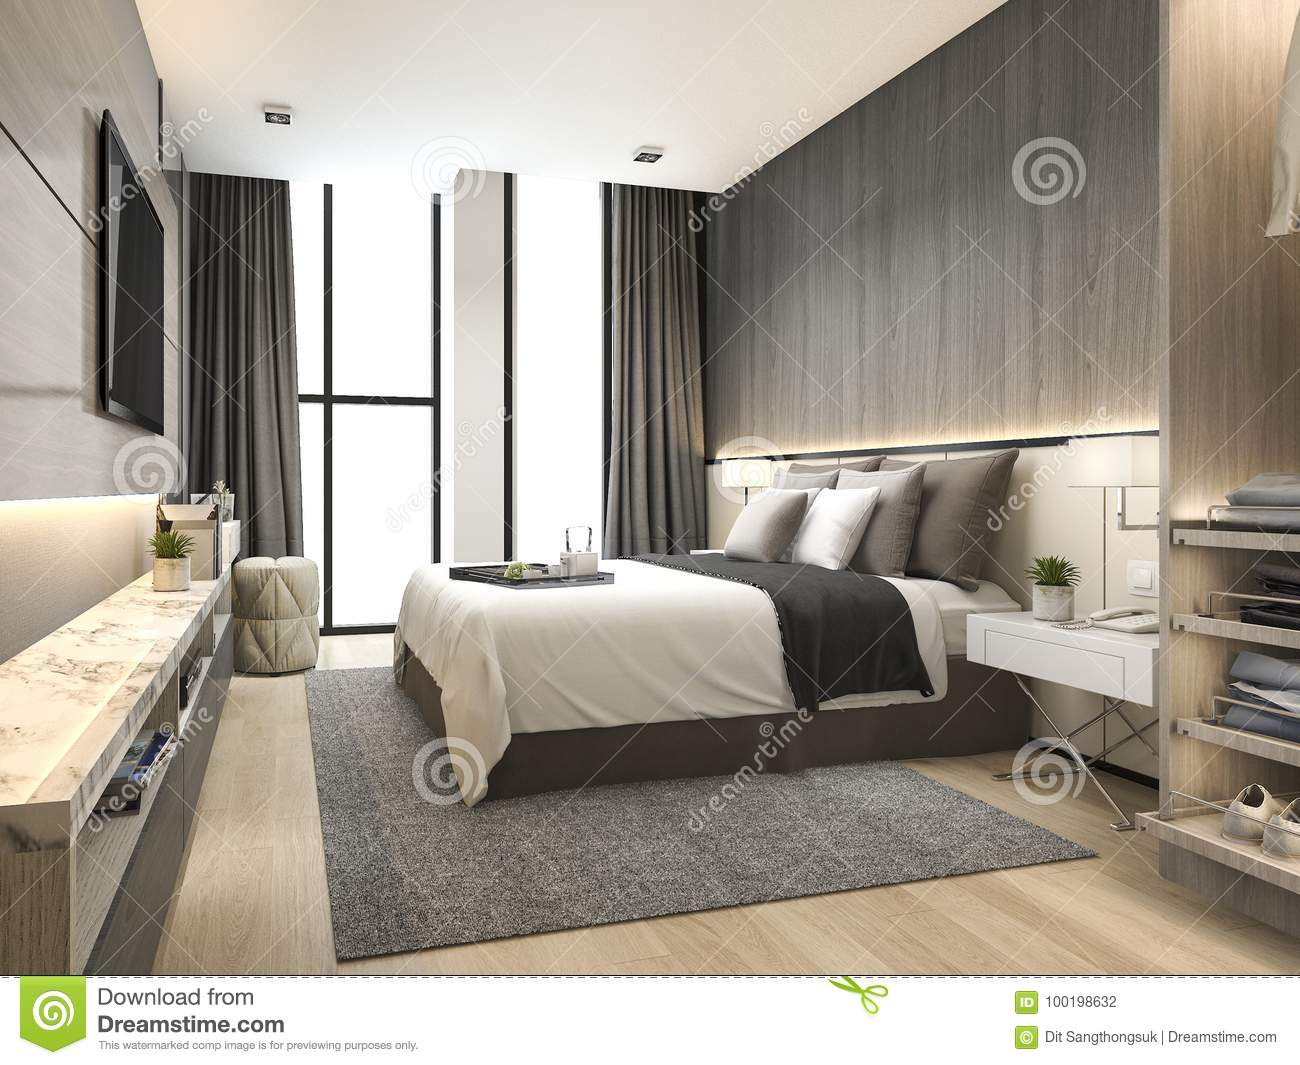 3d Rendering Luxury Modern Bedroom Suite In Hotel With Wardrobe And within Modern Bedroom Suite